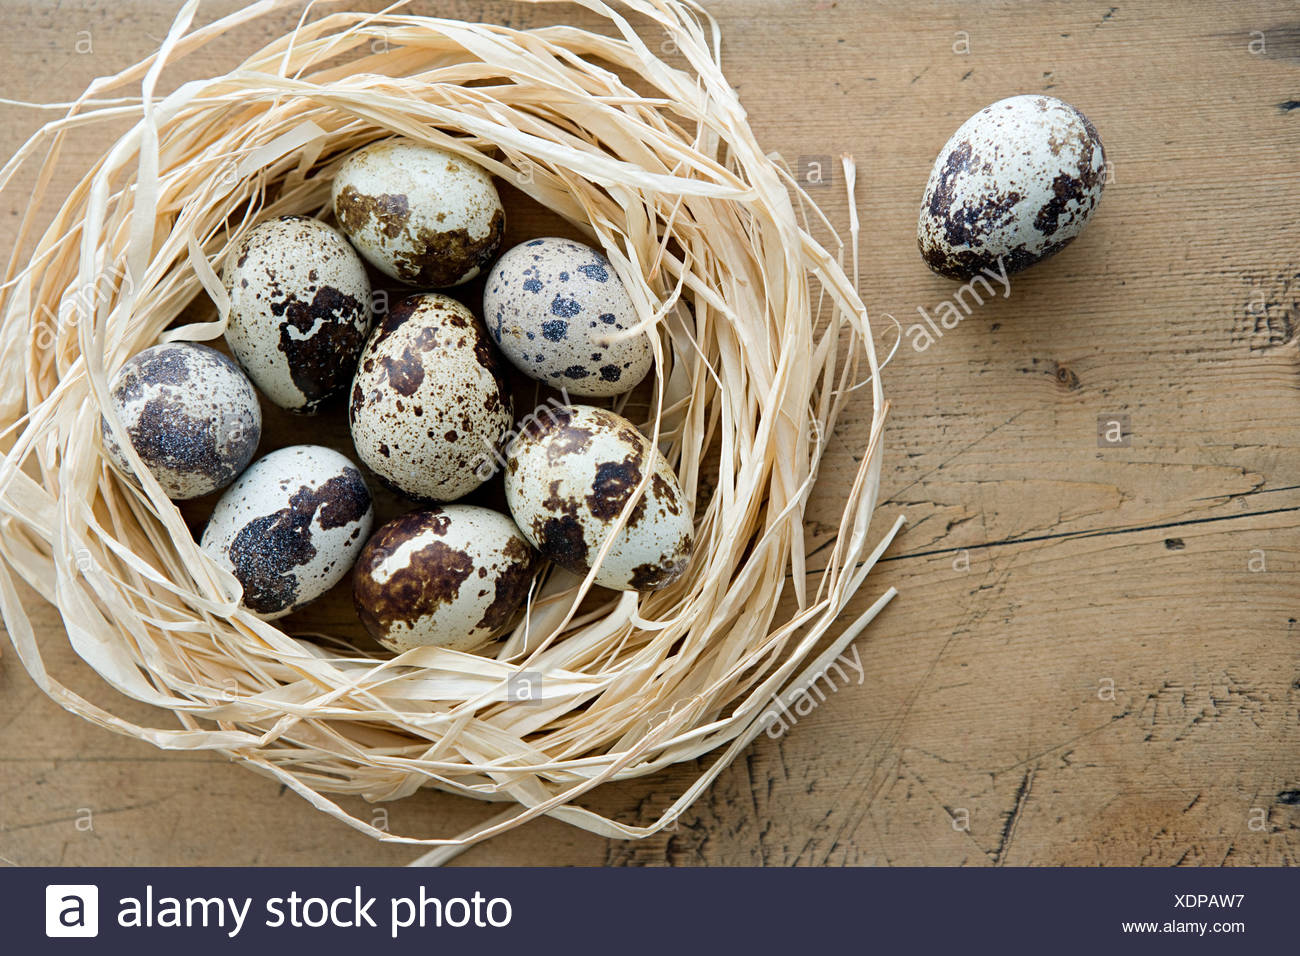 A nest quails eggs with one alone - Stock Image